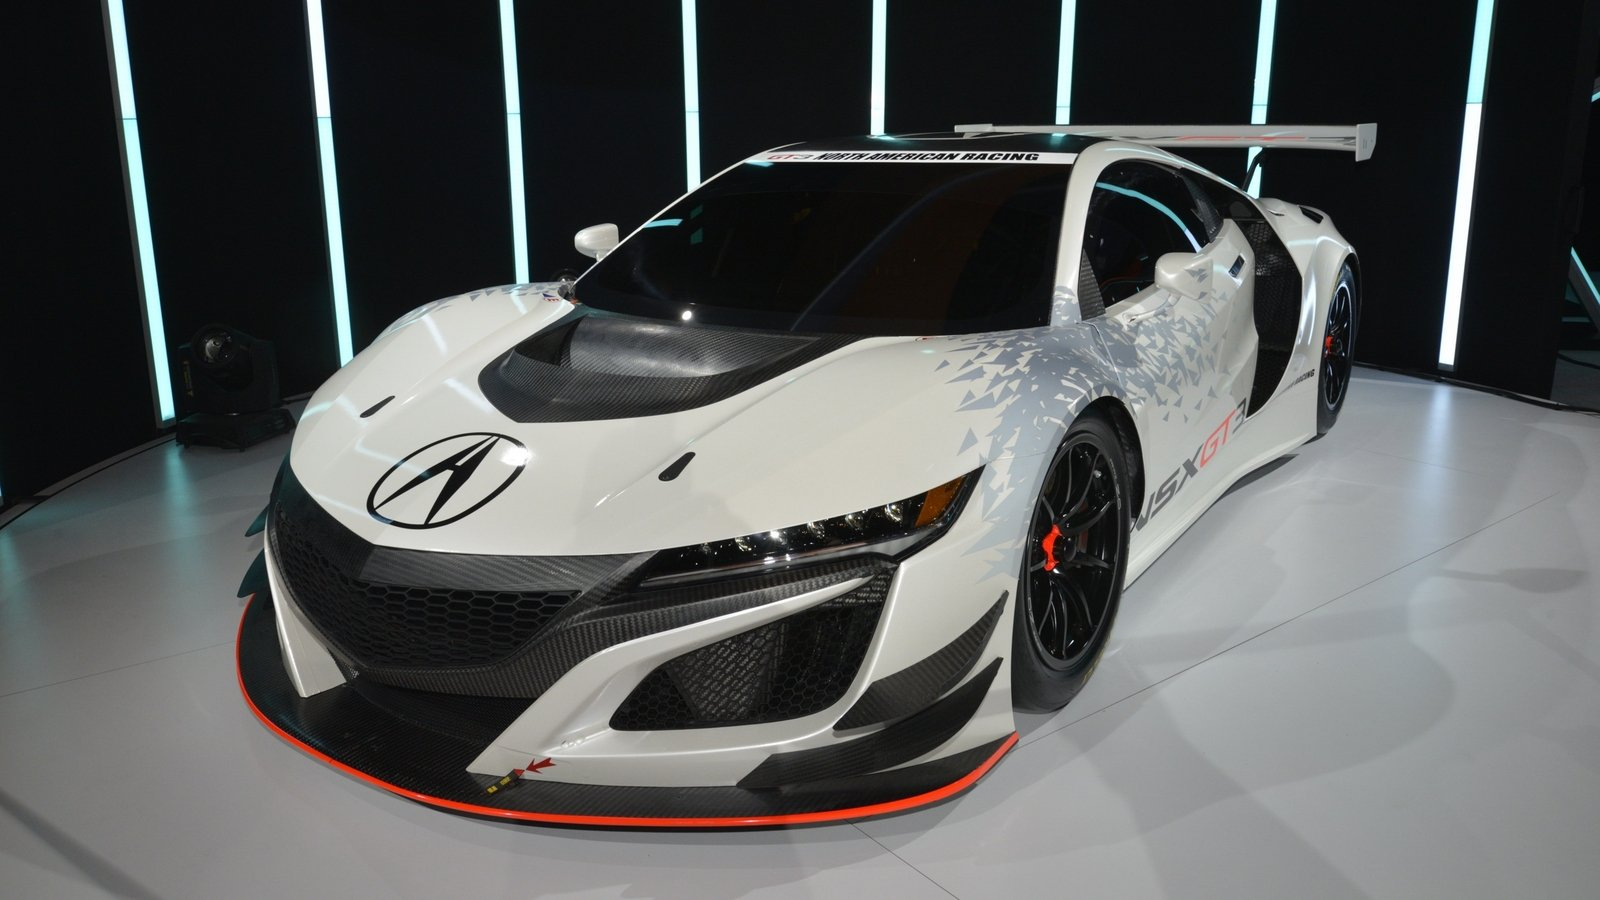 2017 acura nsx gt3 race car picture 670734 car review top speed. Black Bedroom Furniture Sets. Home Design Ideas